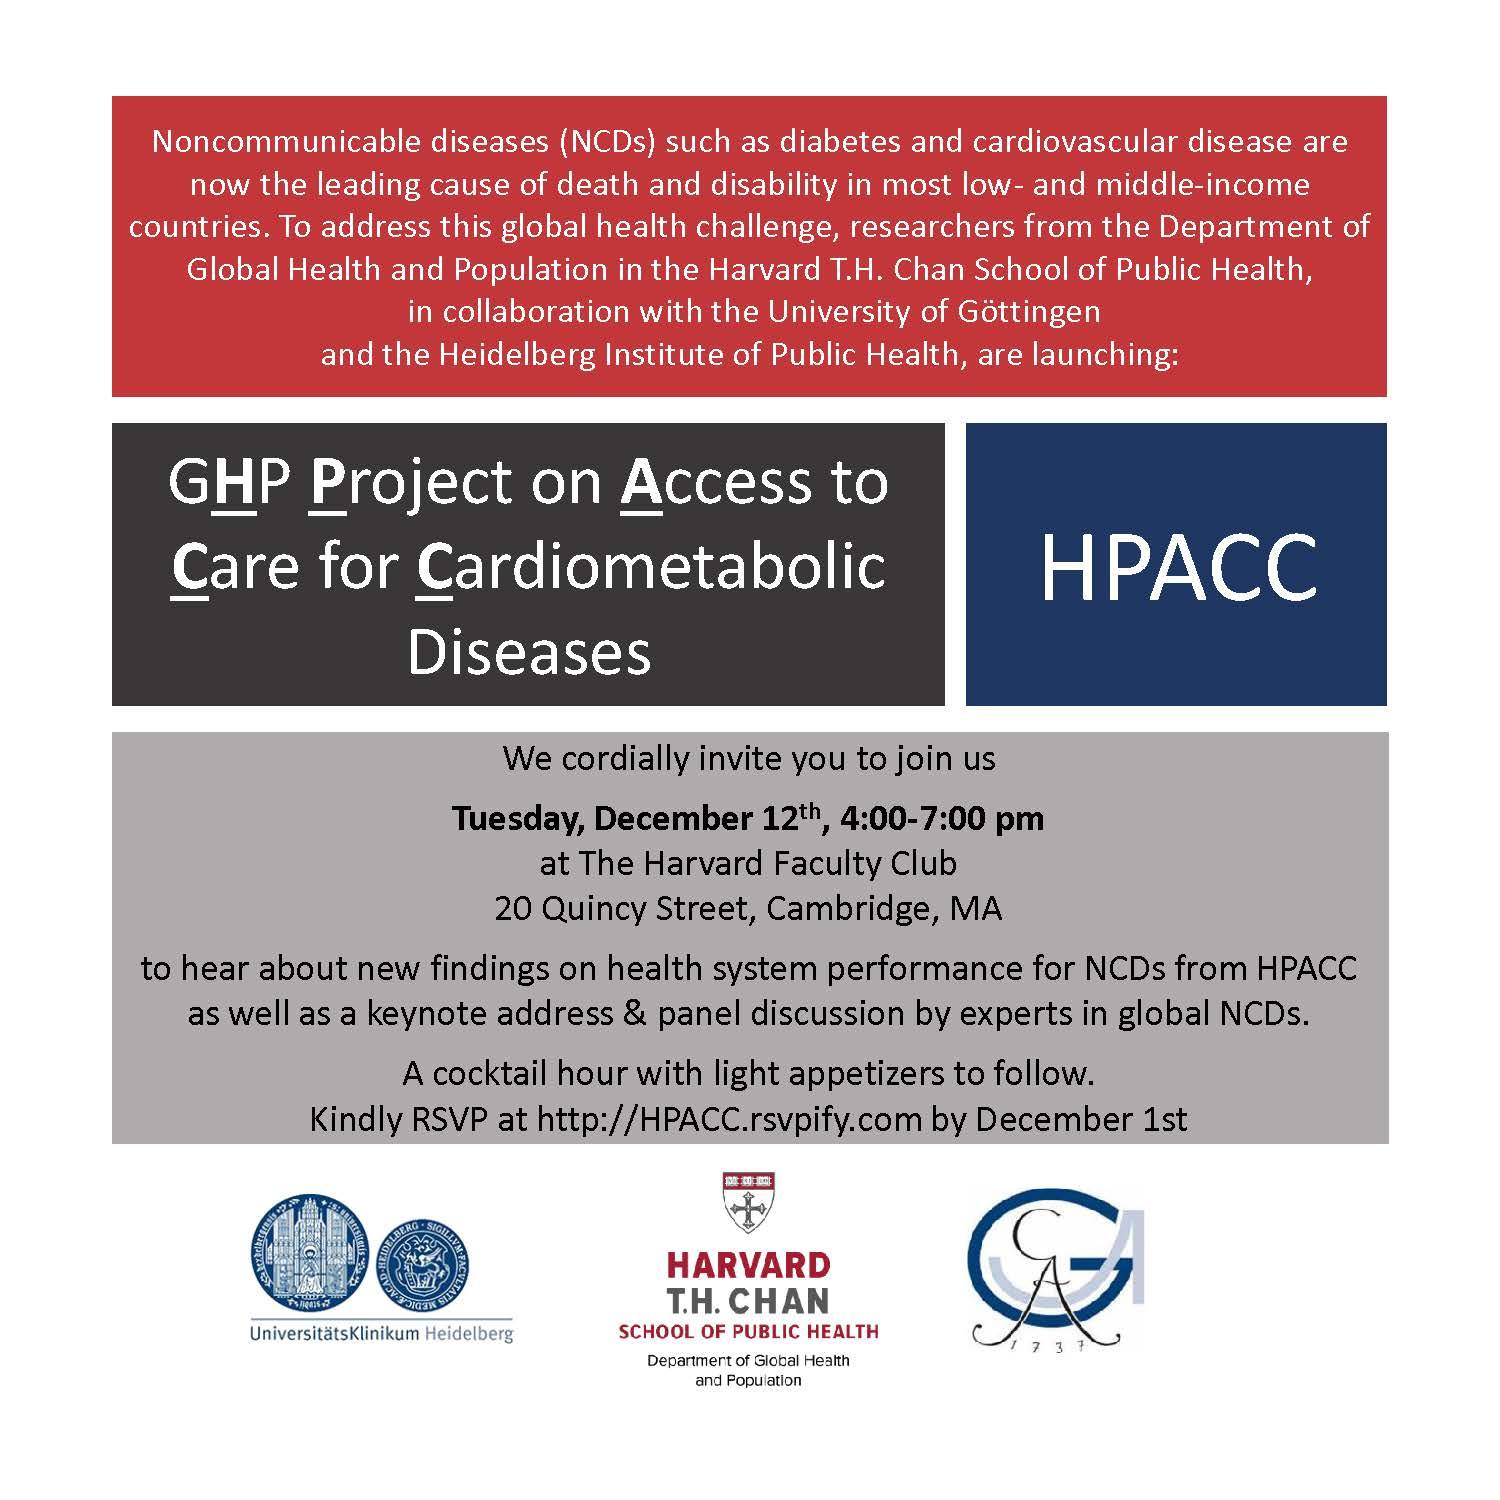 The GHP Project on Access to Care for Cardiometabolic Diseases